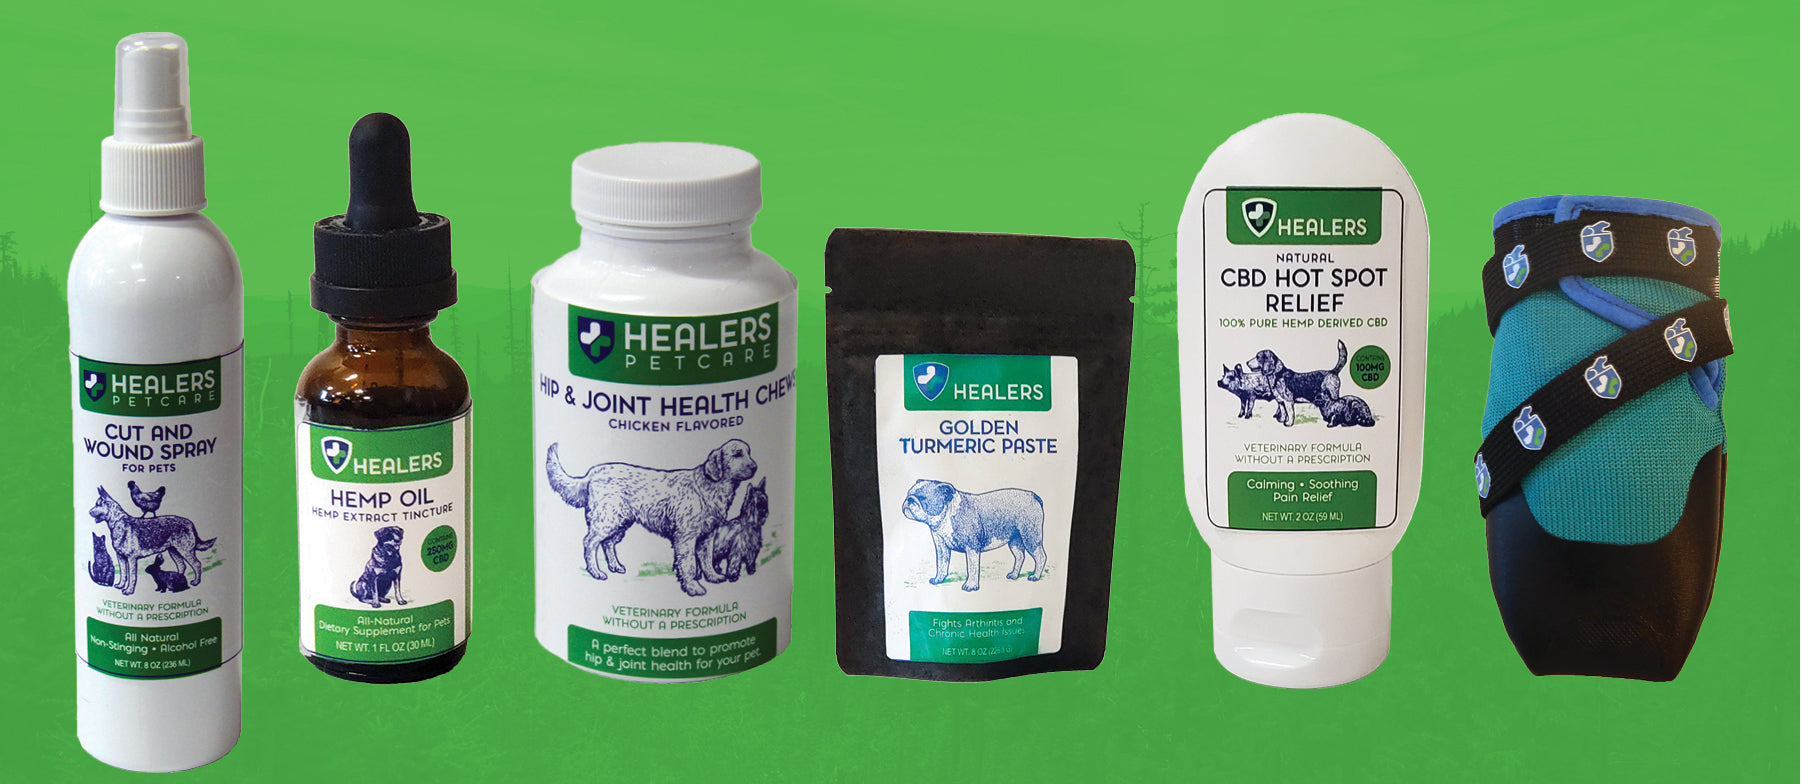 Healers PetCare Announces New Partnership, Pet Health Products